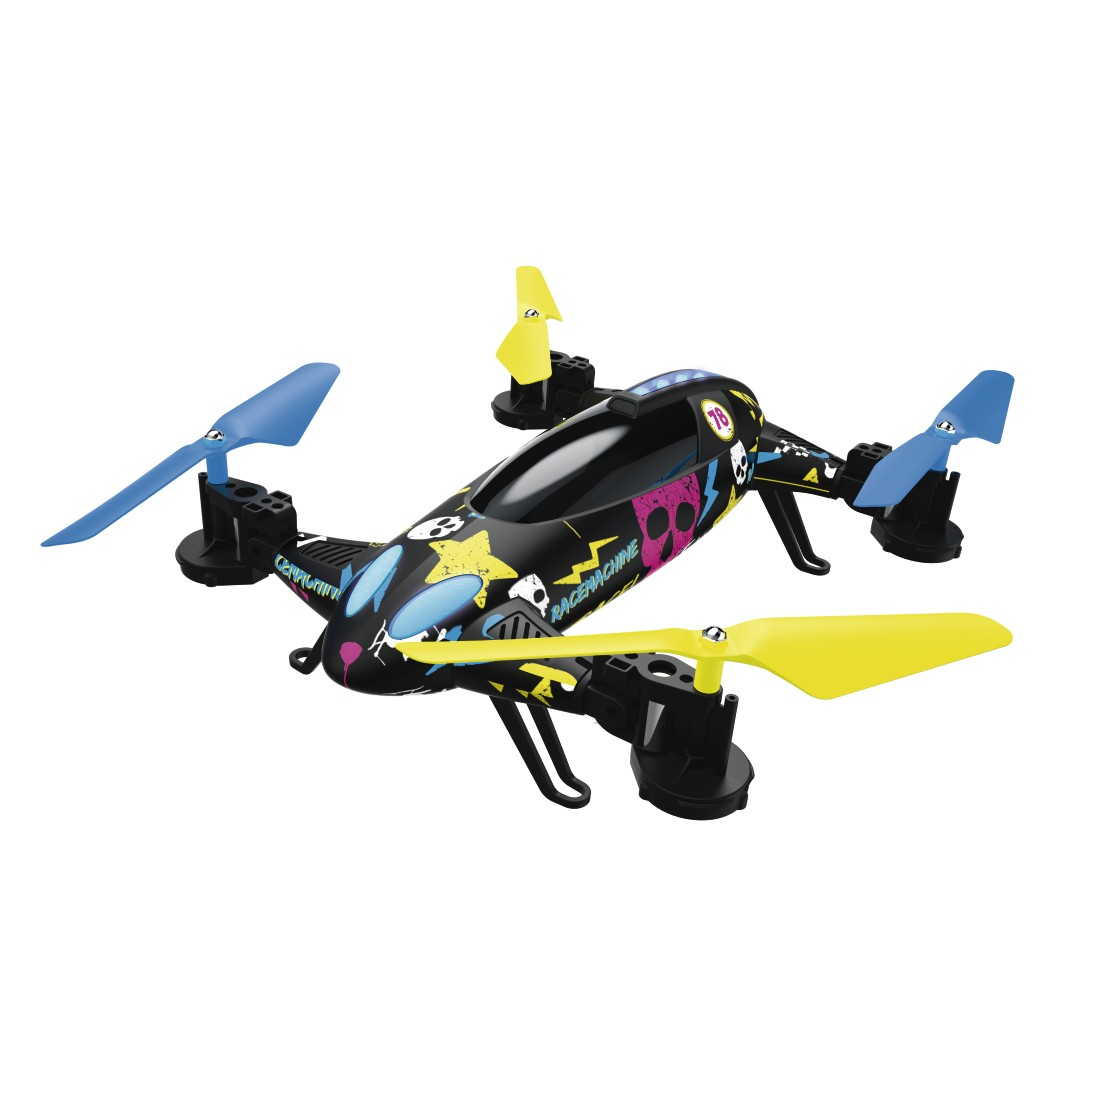 "abx High-Res Image - Hama, ""Racemachine"" 2-in-1 Quadrocopter/RC Car, 6-Axis Gyro-Sensor, 720p Camera"